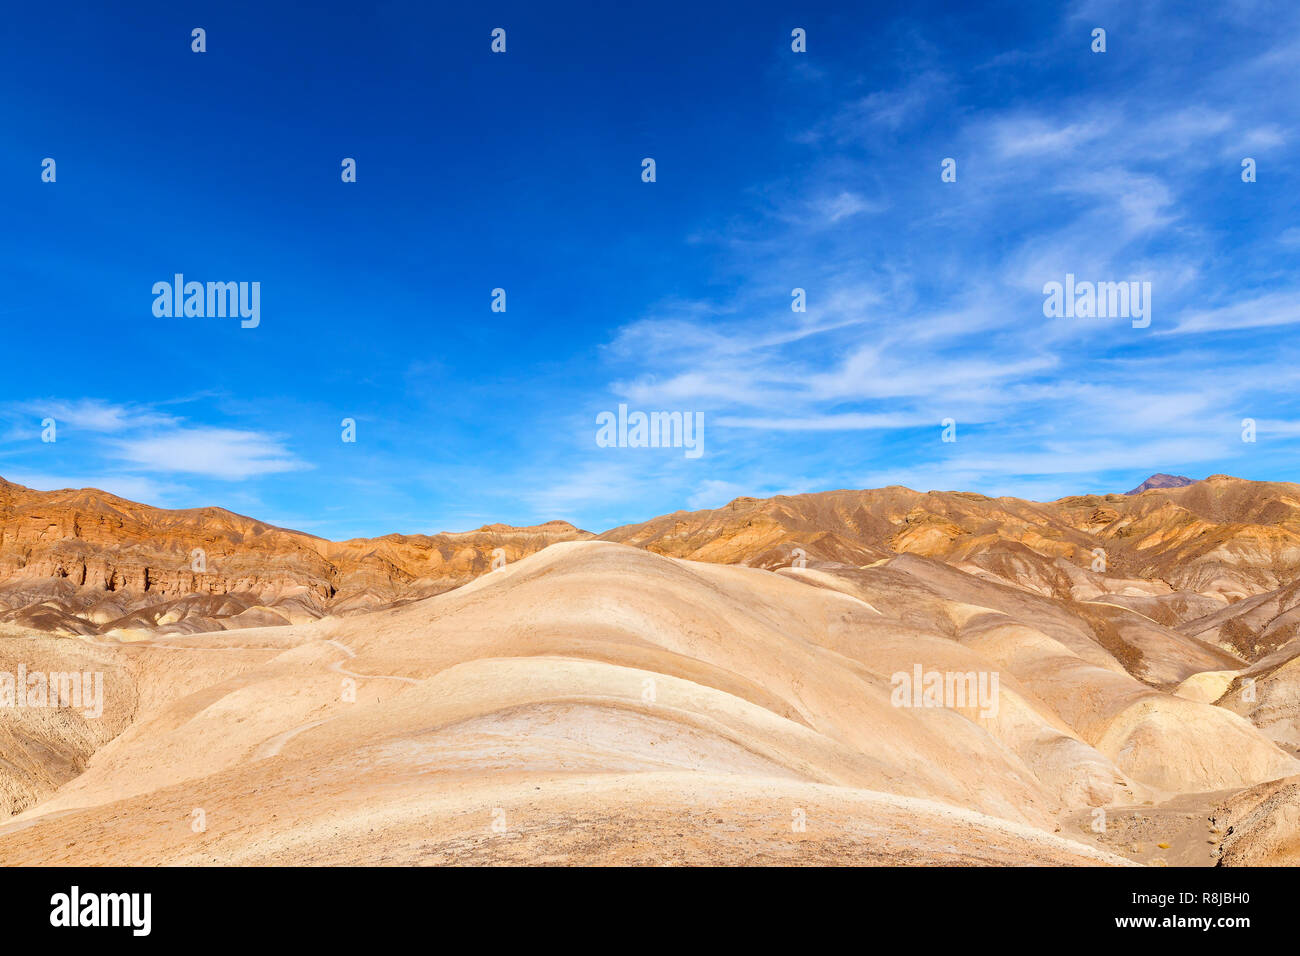 Death Valley National Park panorama near Zabriskie Point. Mountainous landscape of badlands in the morning under blue skies. - Stock Image